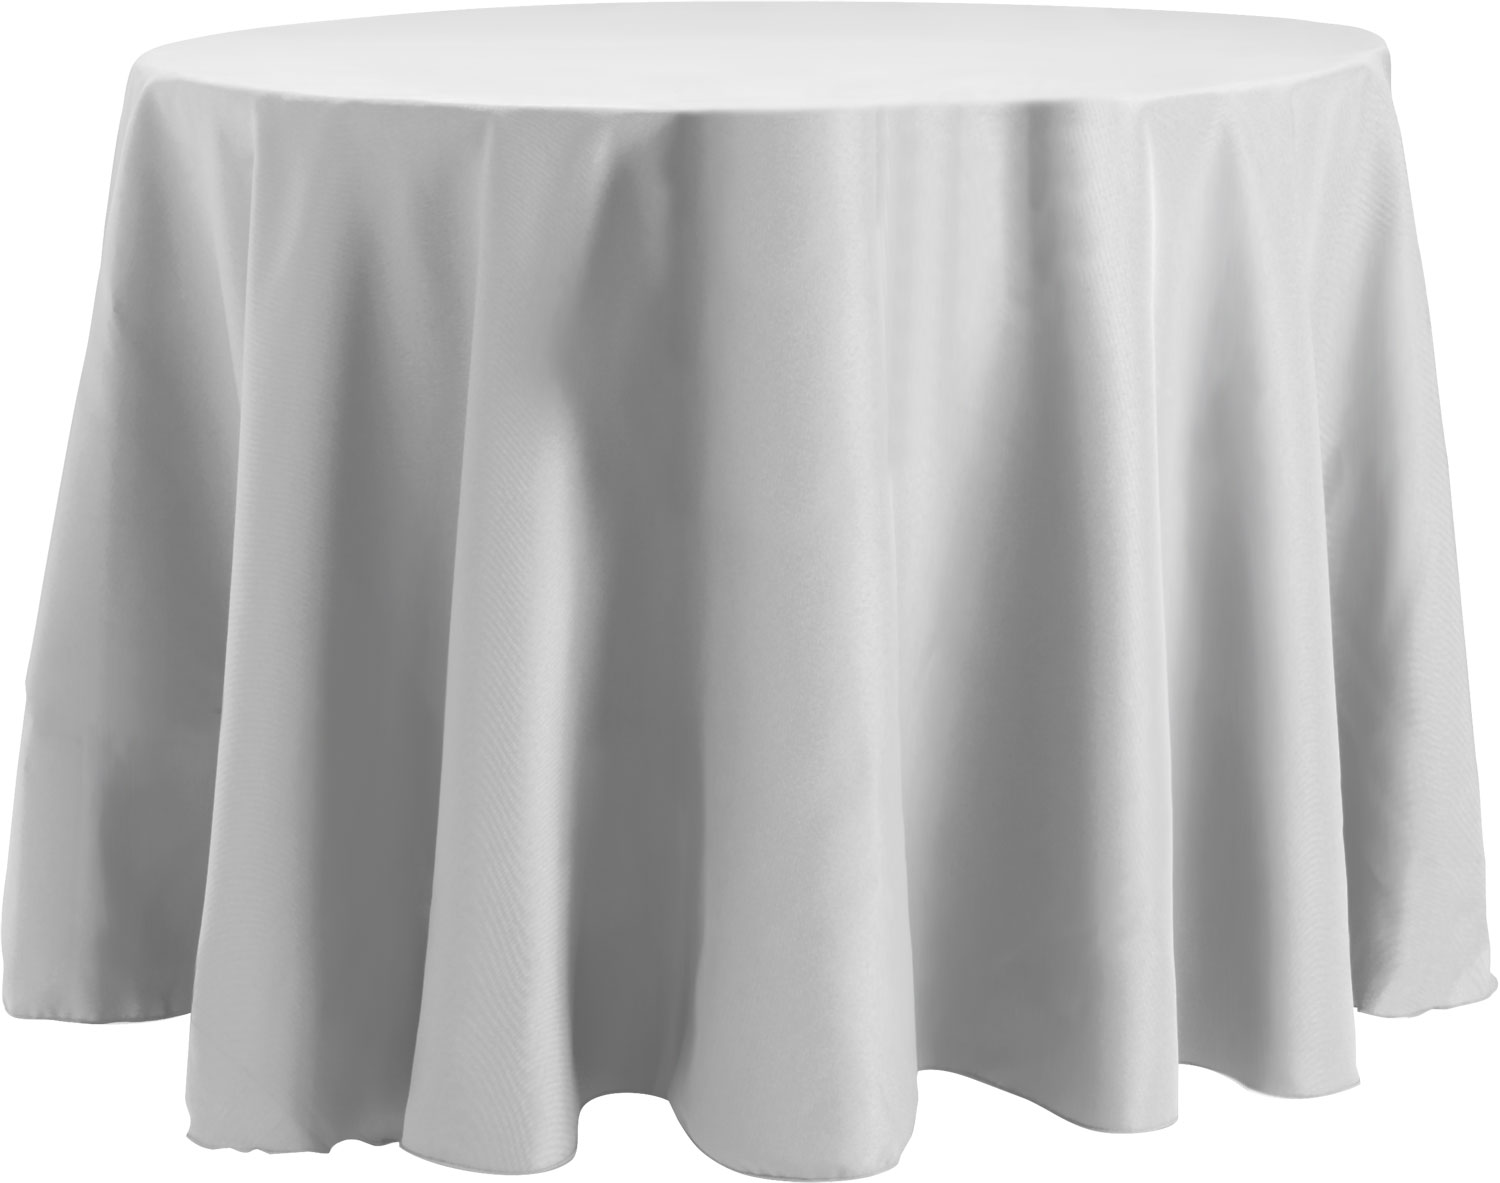 marvellous for format mdn desktop small tablecloth aanbieding tabletop tablespoon teaspoon kopen tablet standaard beste gram plugin vivant grams flour html contents table tableau